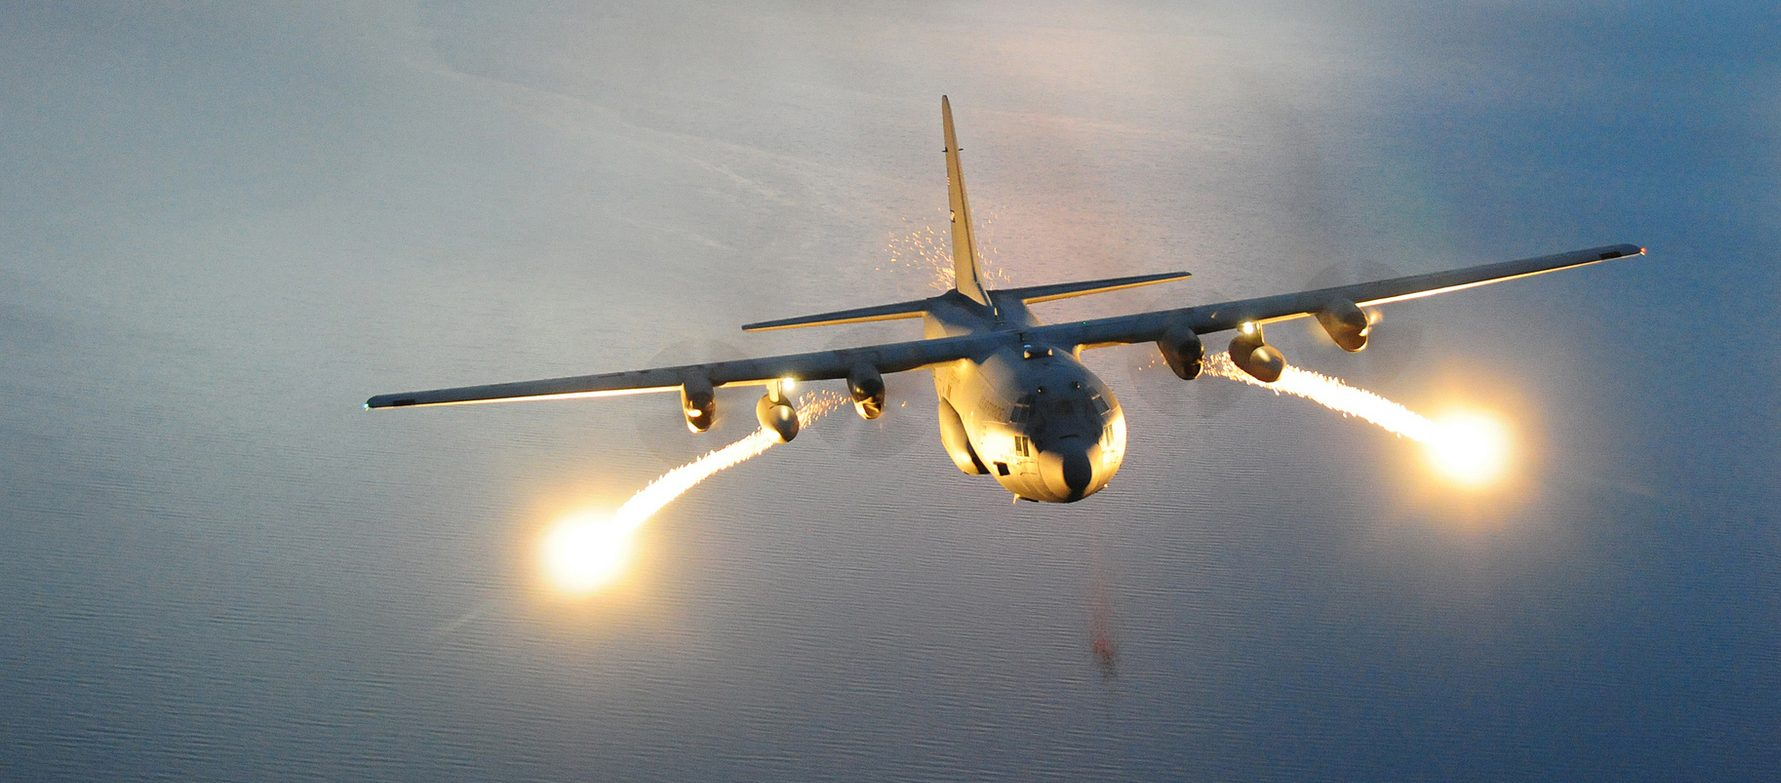 A U.S. Air Force C-130 Hercules cargo aircraft with the 107th Airlift Wing fires off flares during a night formation training mission. A flare is an aerial infrared countermeasure to counter and infrared homing (heat seeking) surface-to-air or air-to-air missile. (U.S. Air Force photo by Senior Master Sgt. Ray Lloyd)